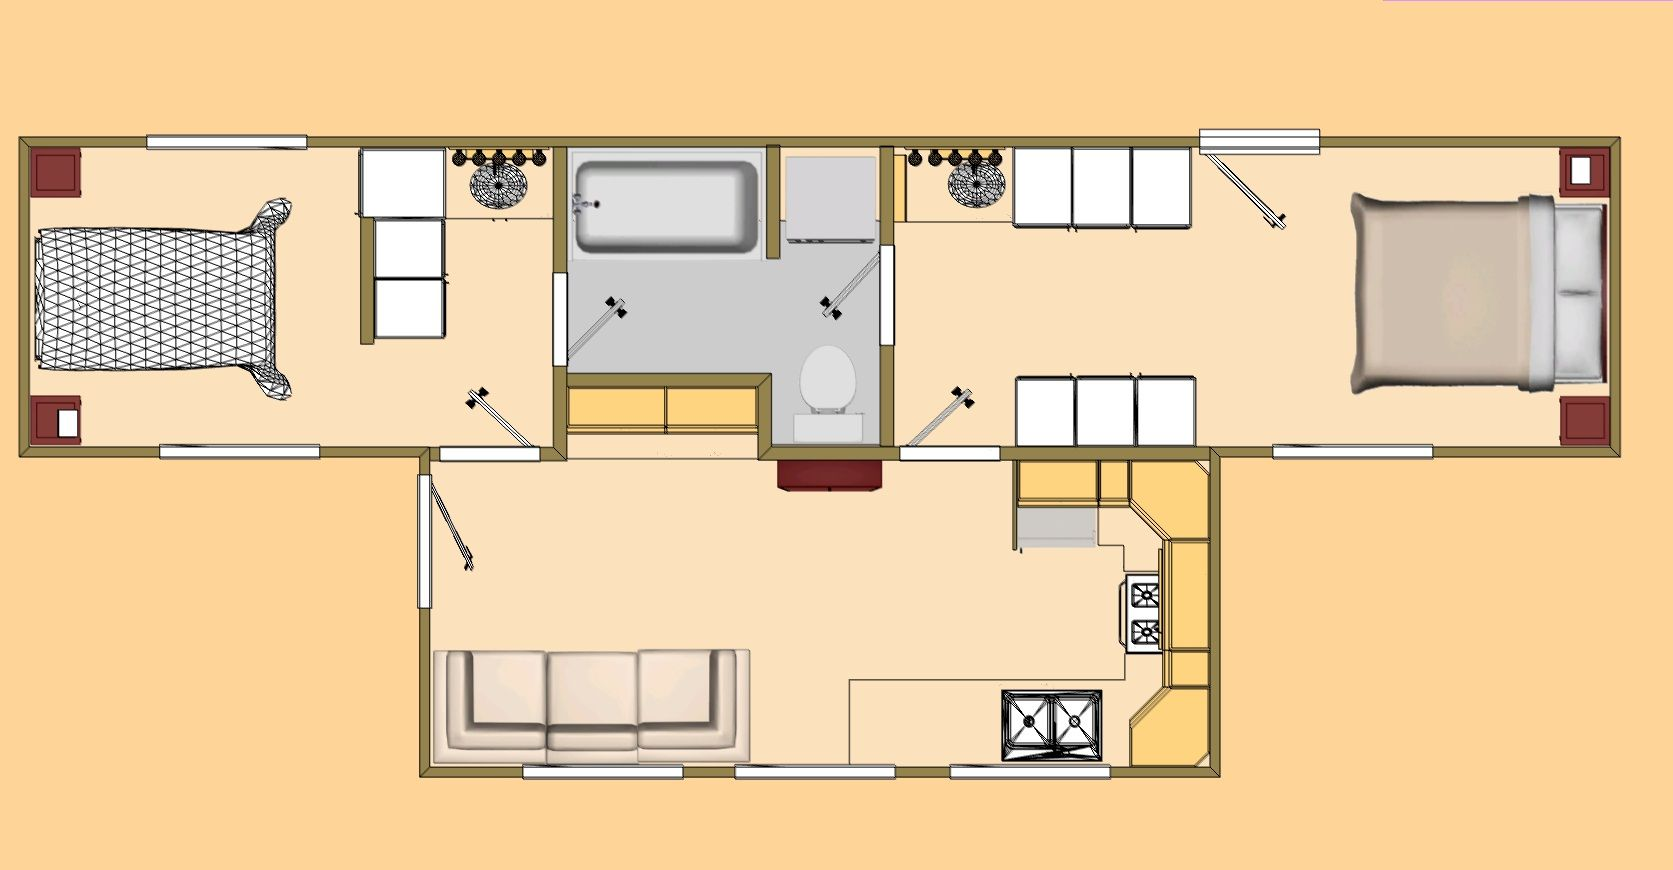 Container home floor plans com 480 sq ft shipping container floor plan big t floor plan - Sea container home designs ideas ...